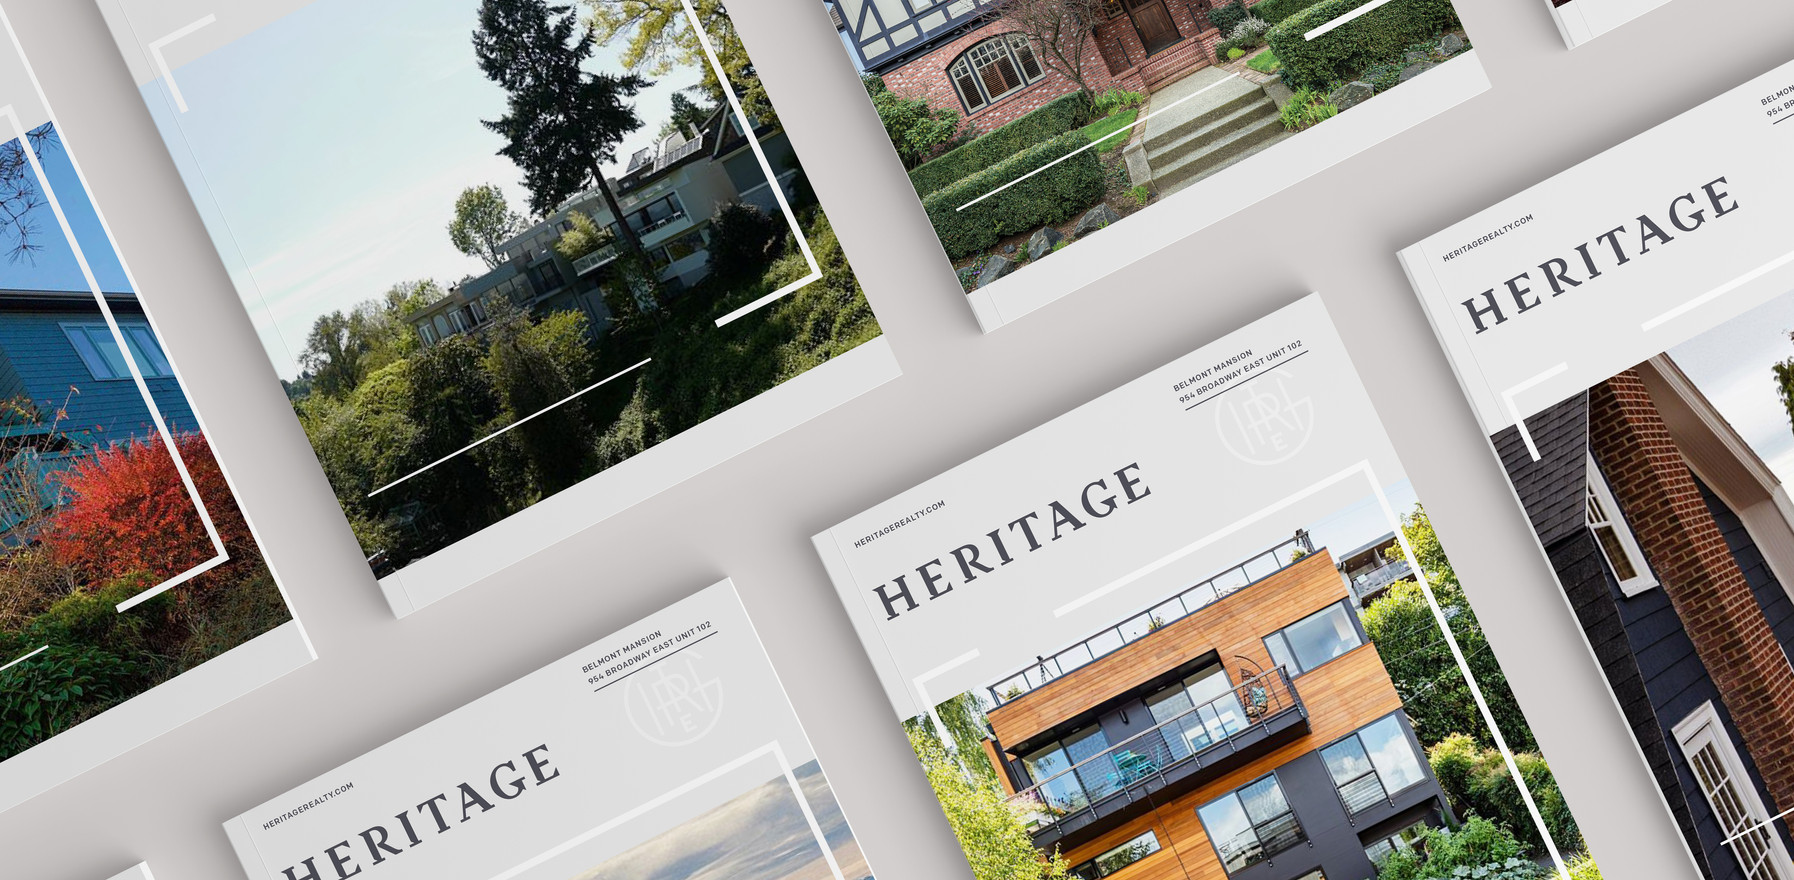 Heritage (Click to View)